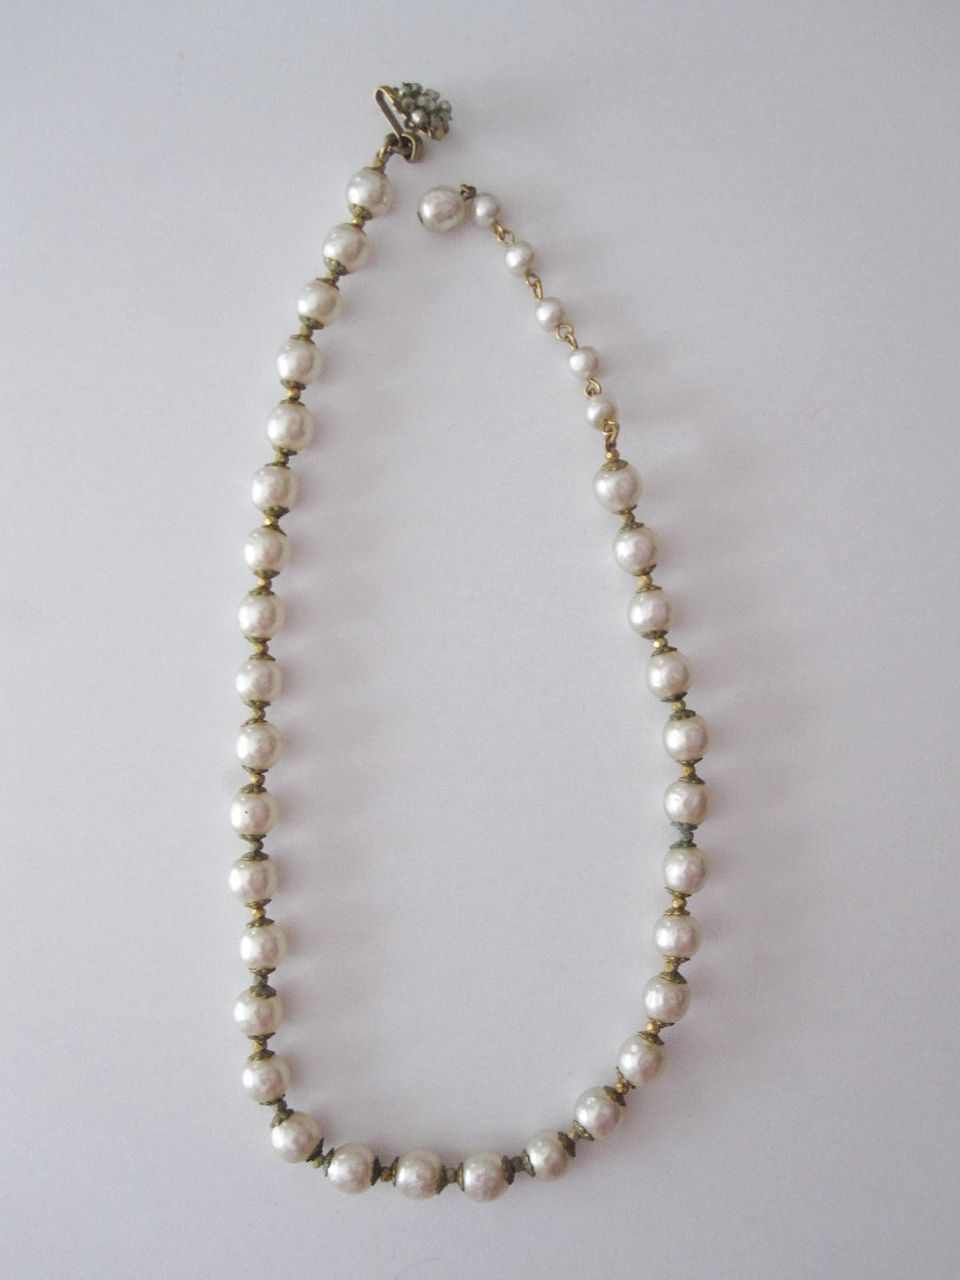 Vintage Miriam Haskell Pearl Choker Necklace Floral Clasp